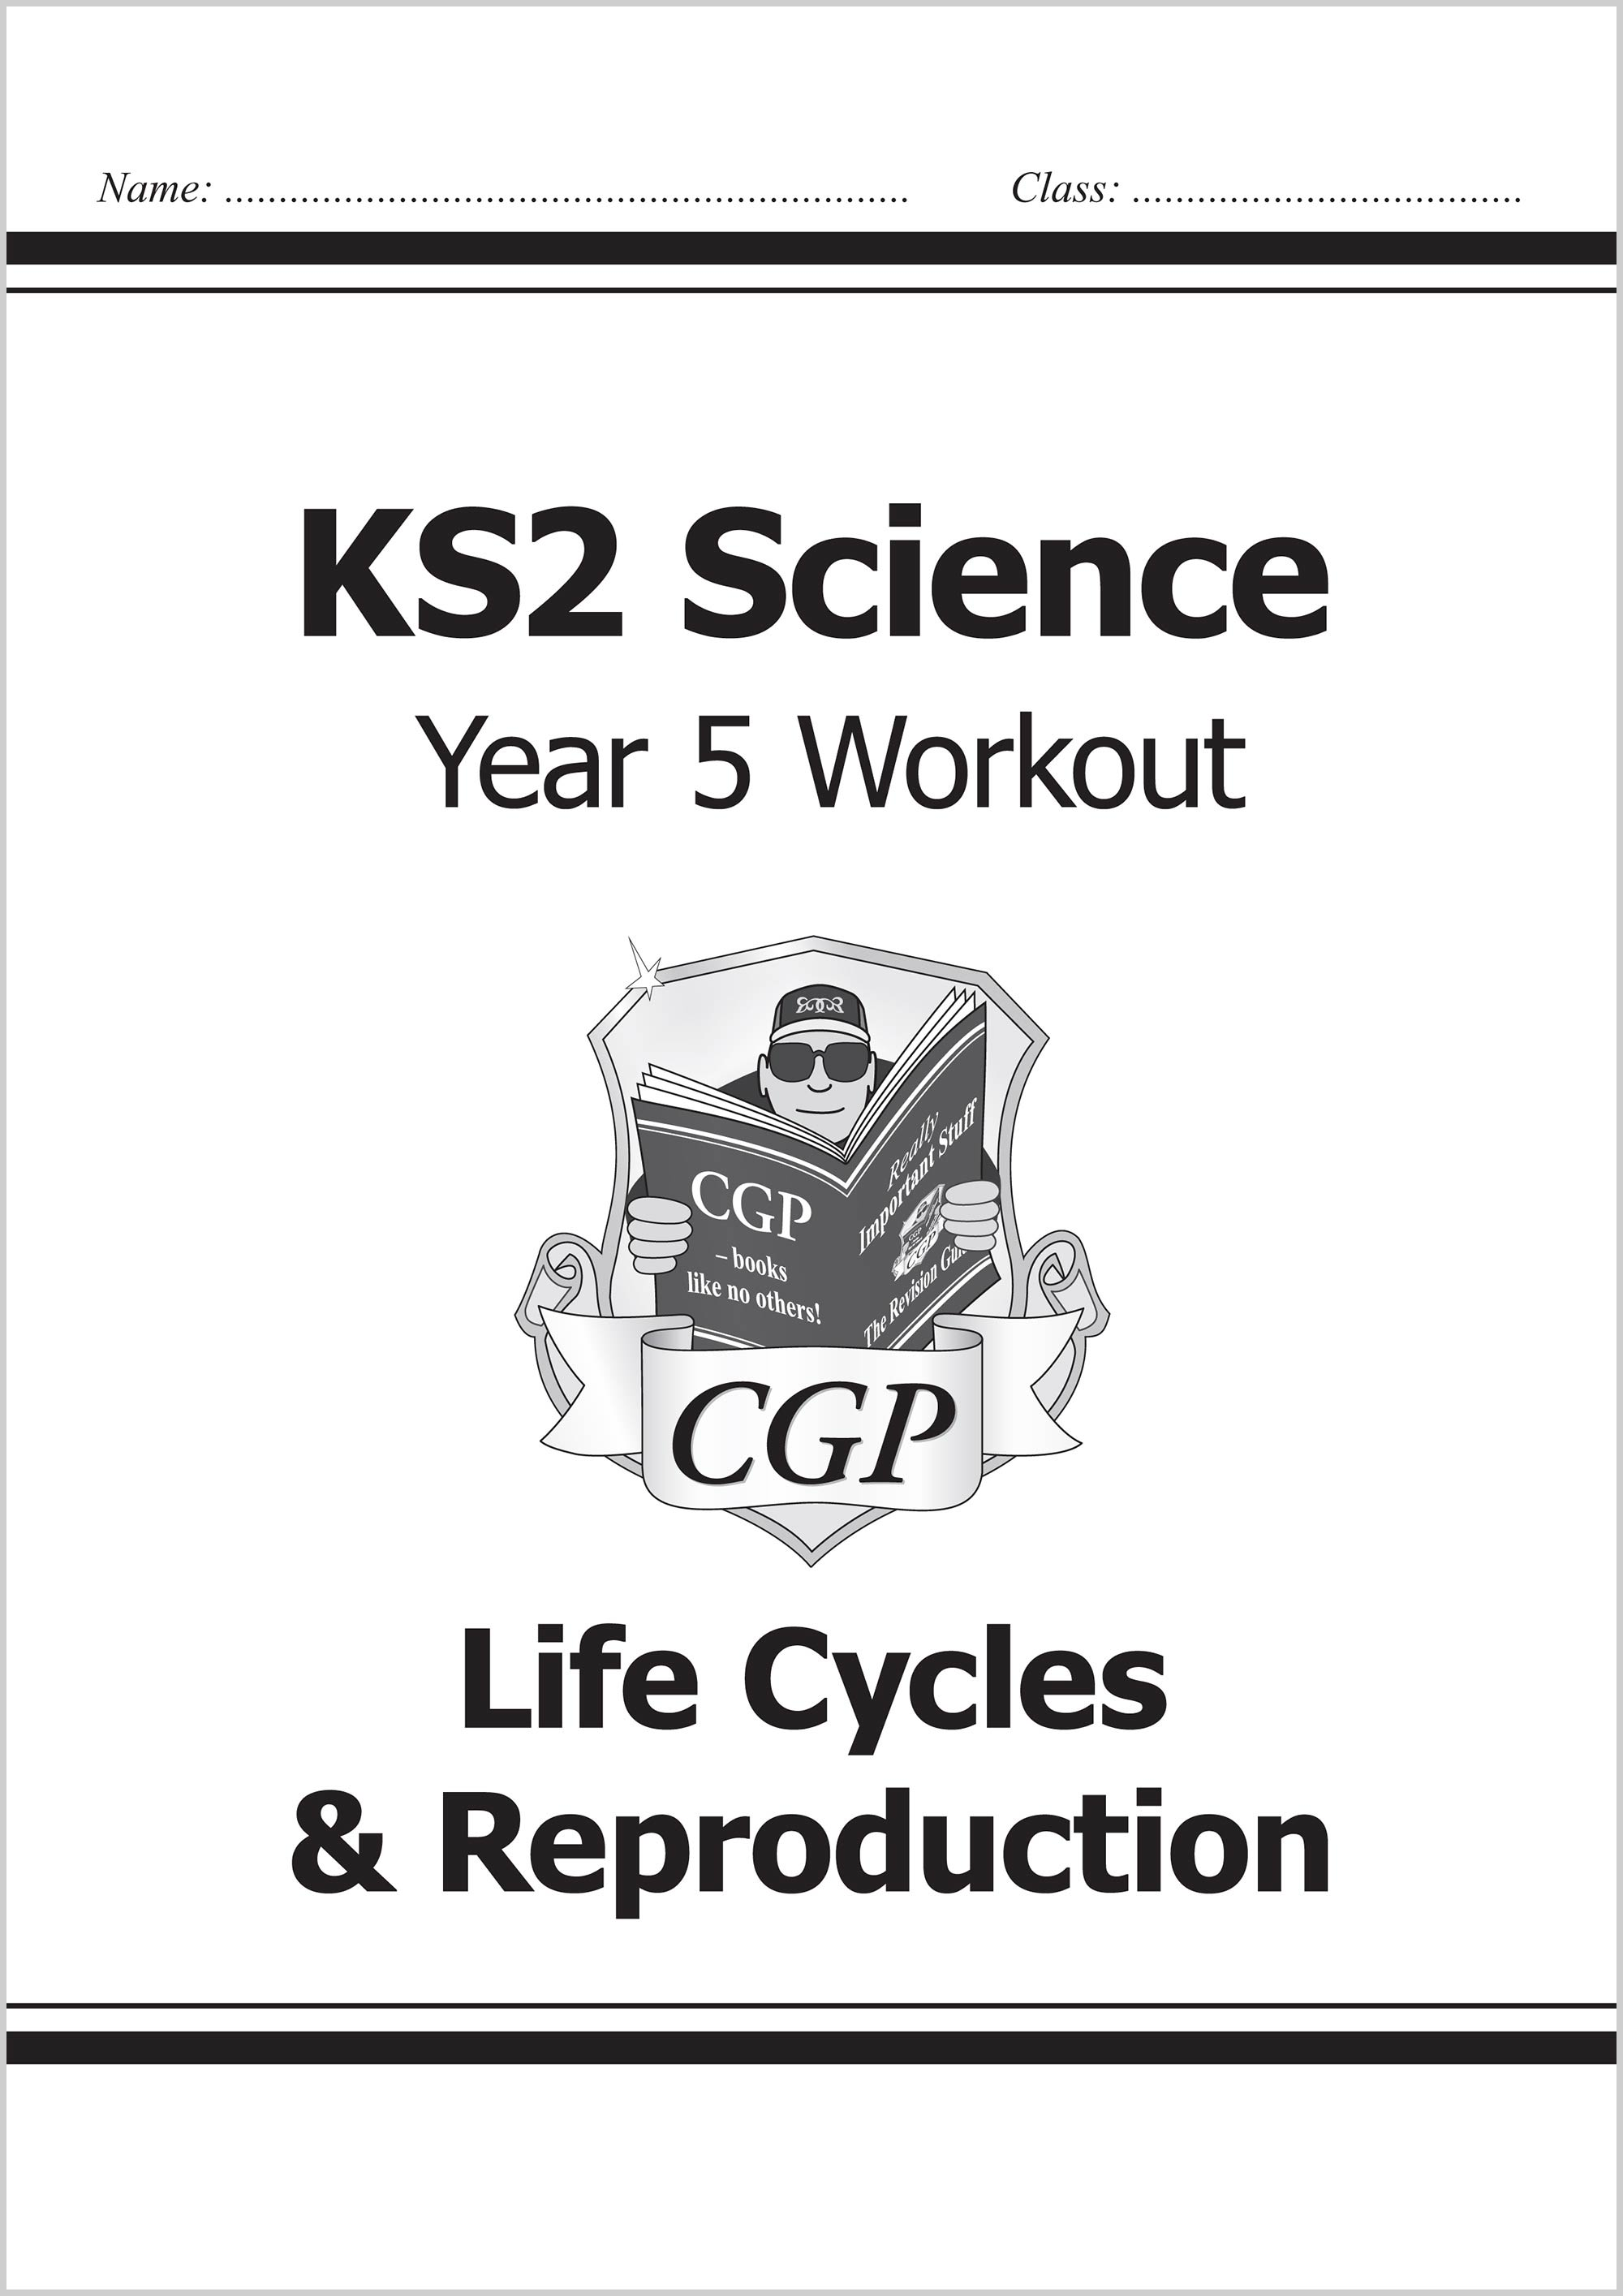 S5A22 - KS2 Science Year Five Workout: Life Cycles & Reproduction